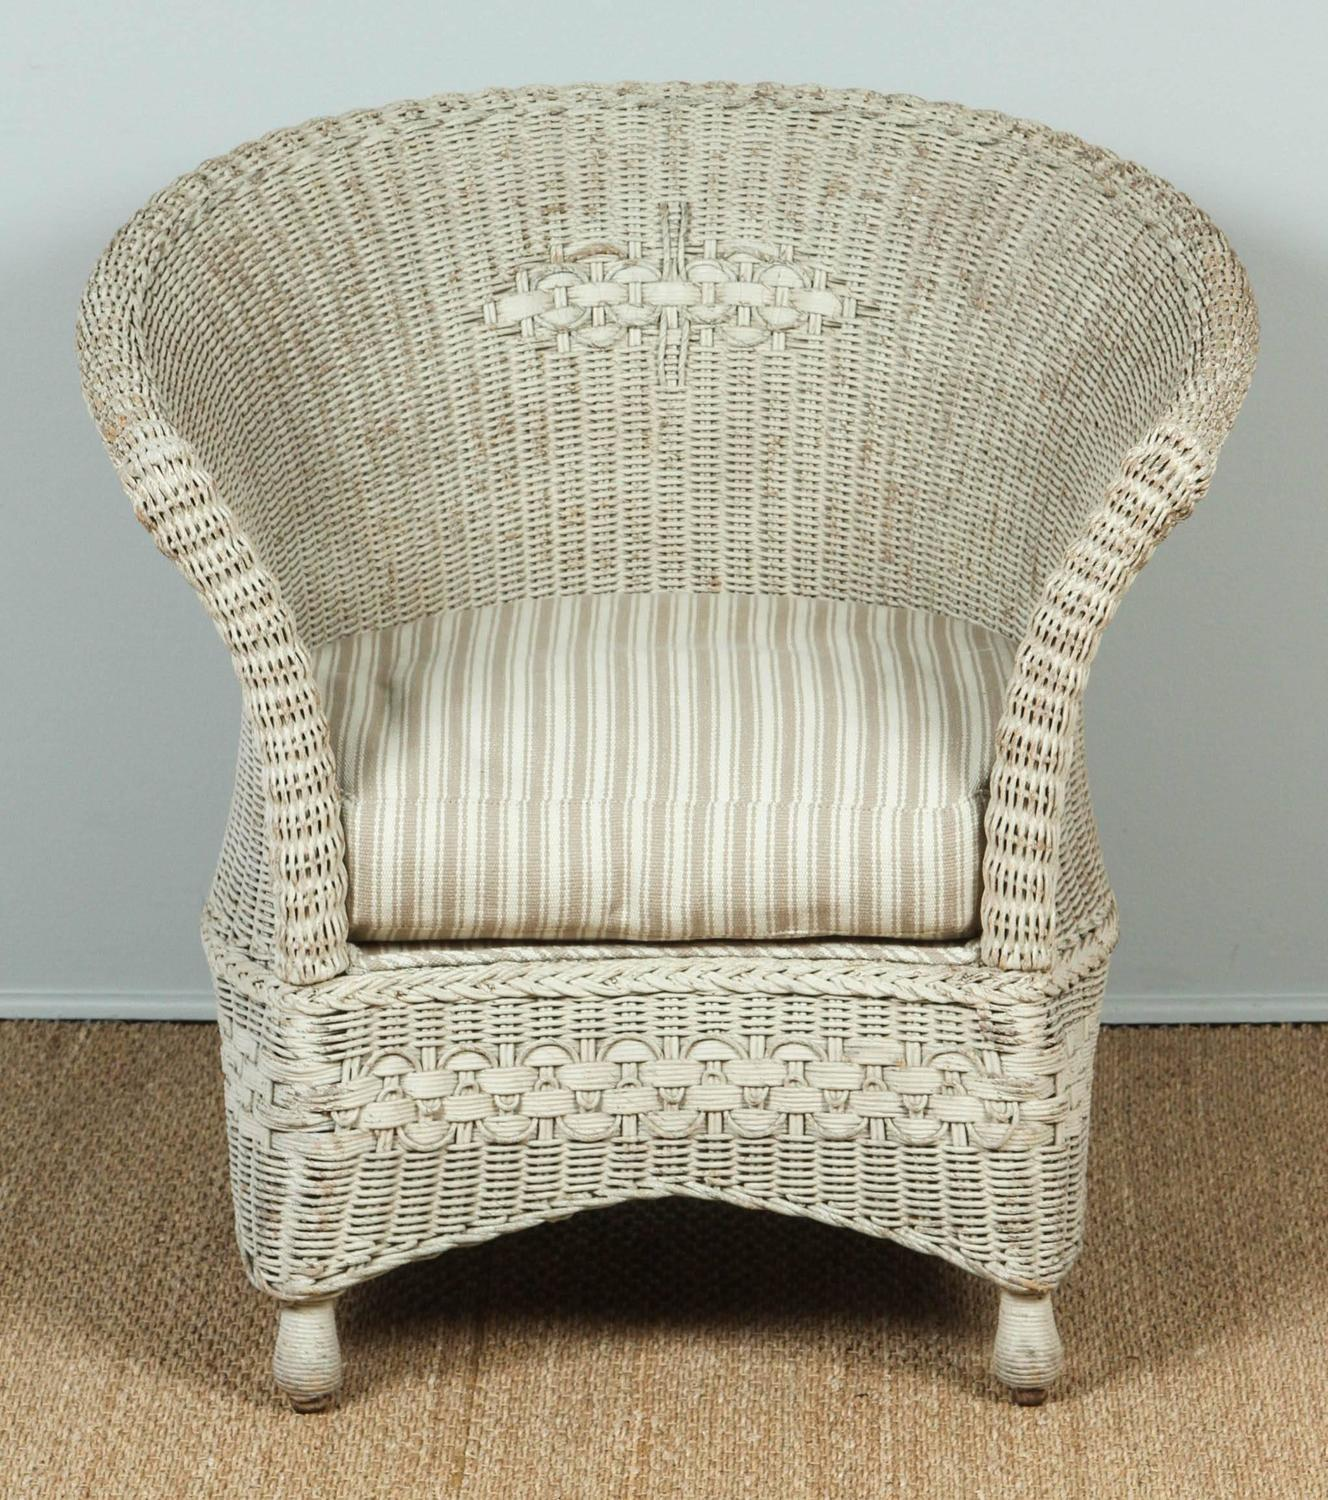 Old Fashioned Furniture For Sale: Antique Wicker Chair And Rocker For Sale At 1stdibs